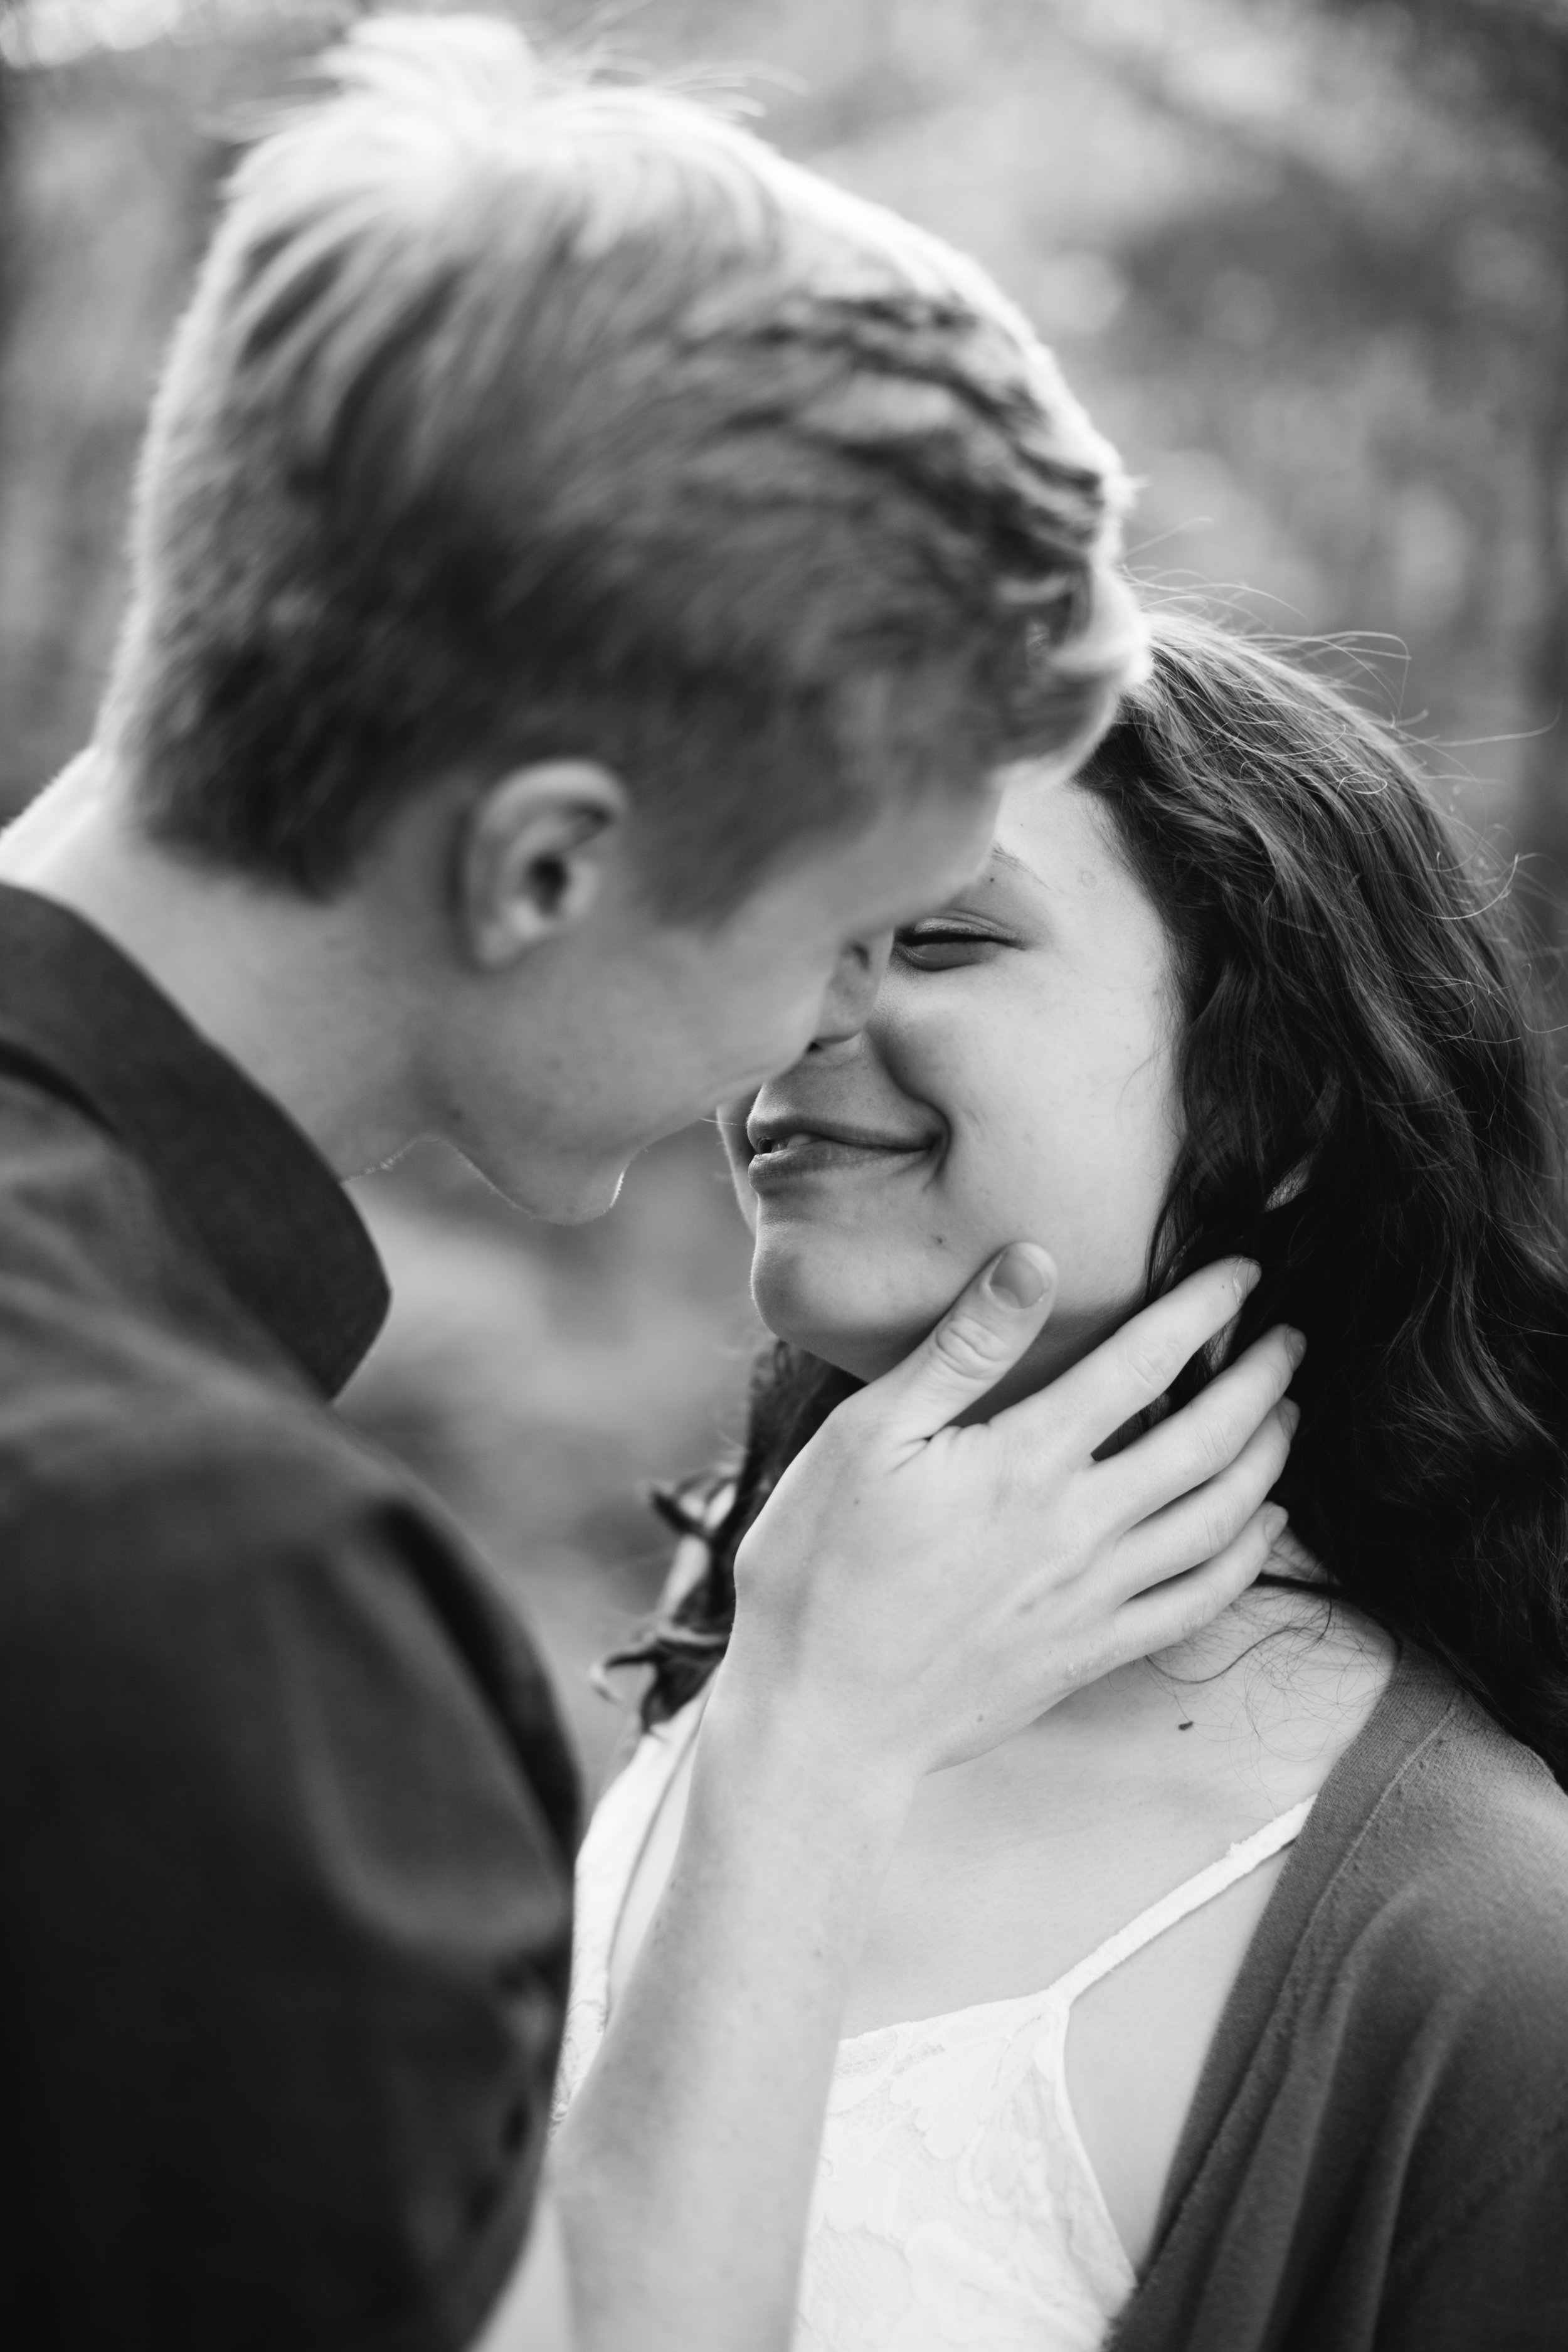 Ian_Sarah_Engagement_Knoxville_Abigail_malone_Photography-64.jpg